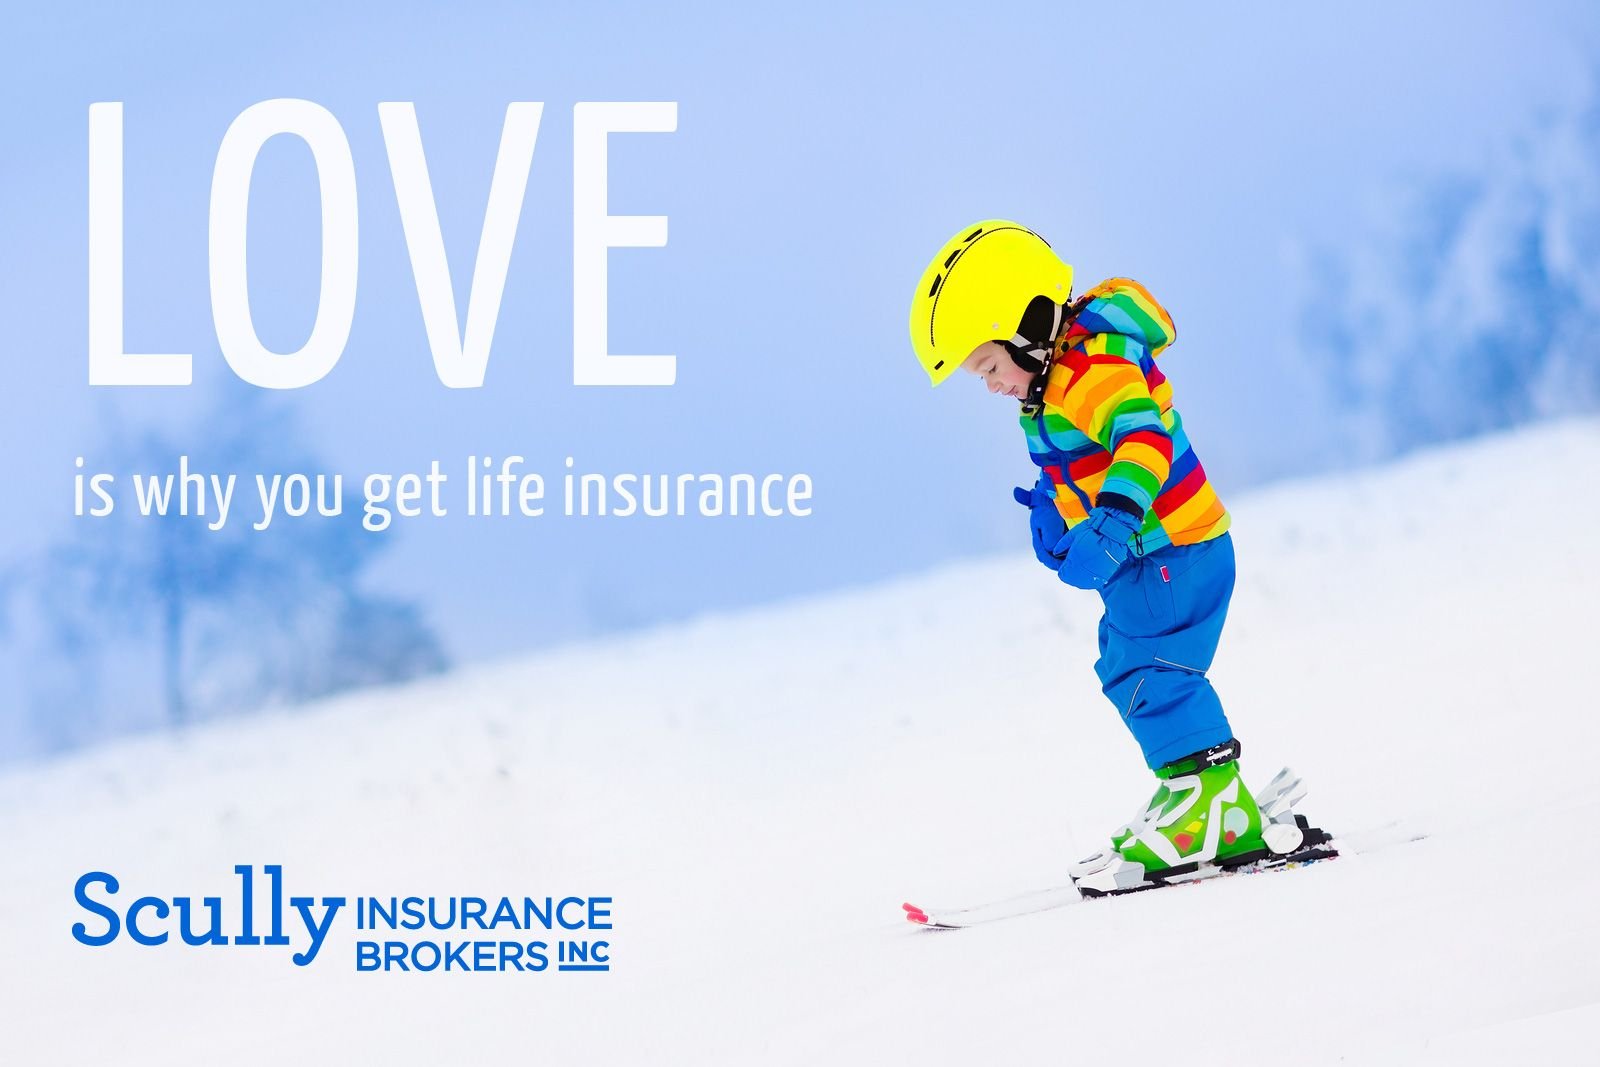 LIFE INSURANCE PROCEEDS HELP ENSURE YOUR FAMILY MEMBERS